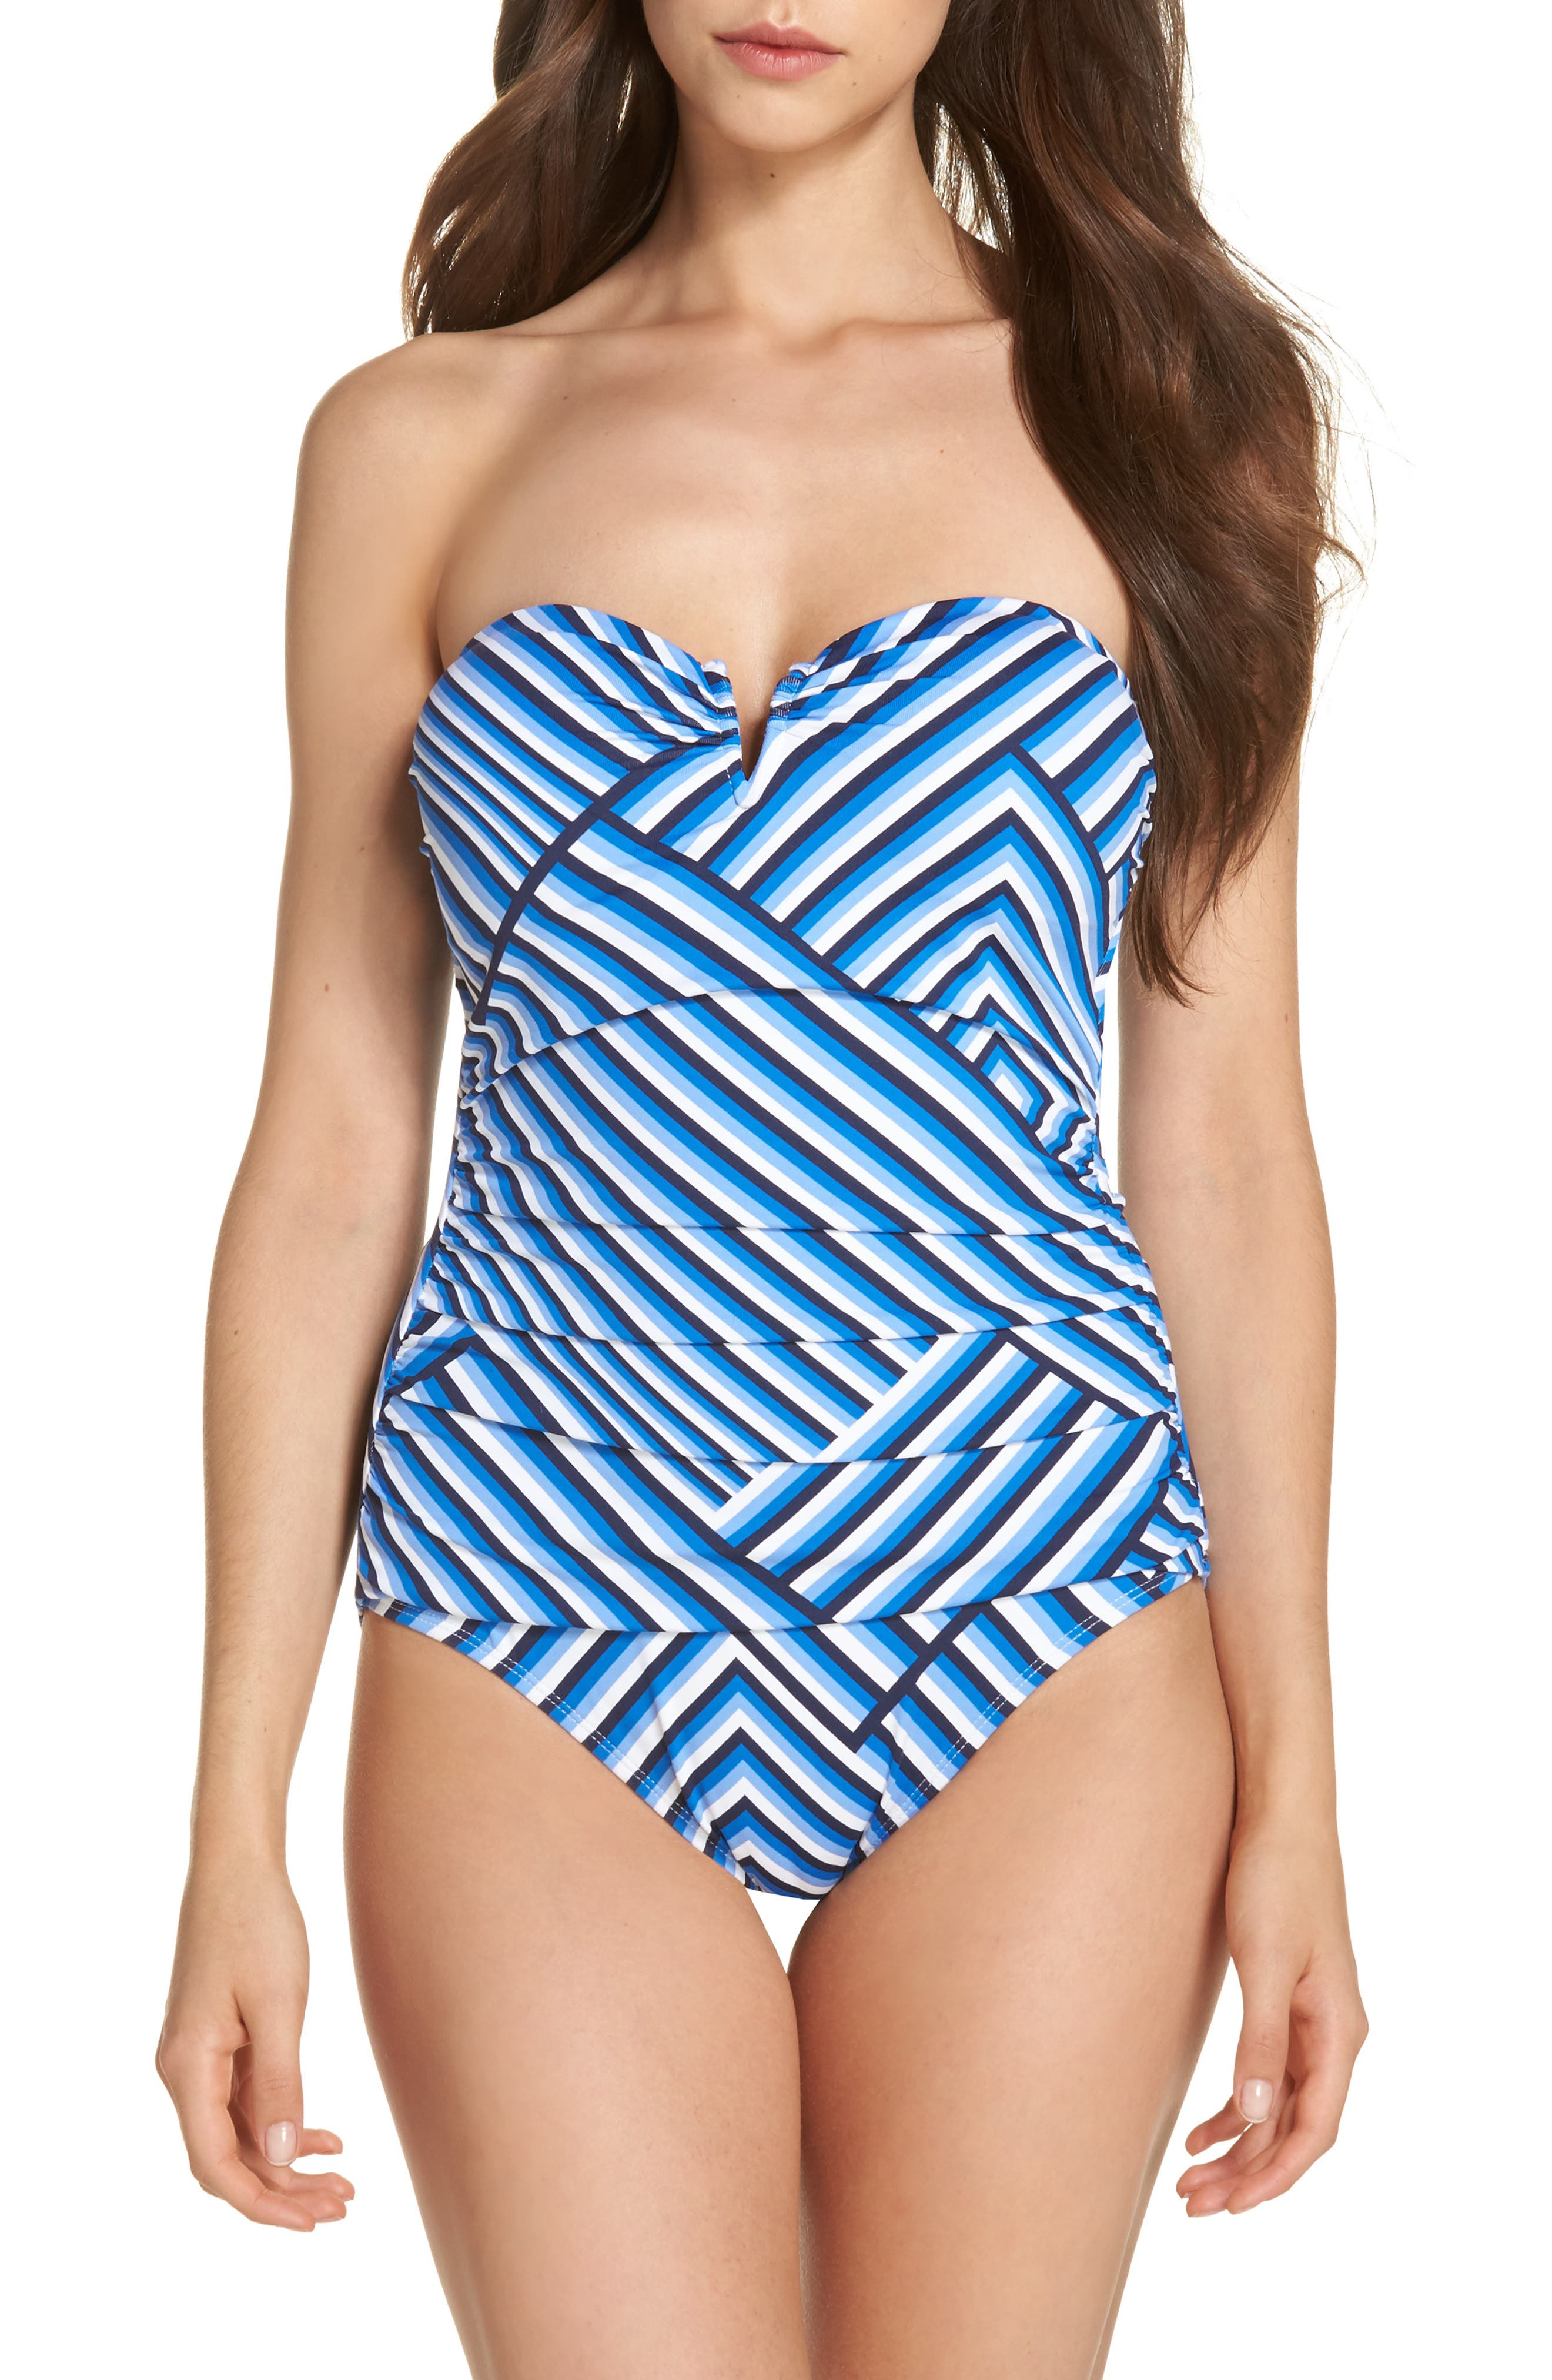 Fuller Fronds Strapless One-Piece Swimsuit,                             Main thumbnail 1, color,                             100